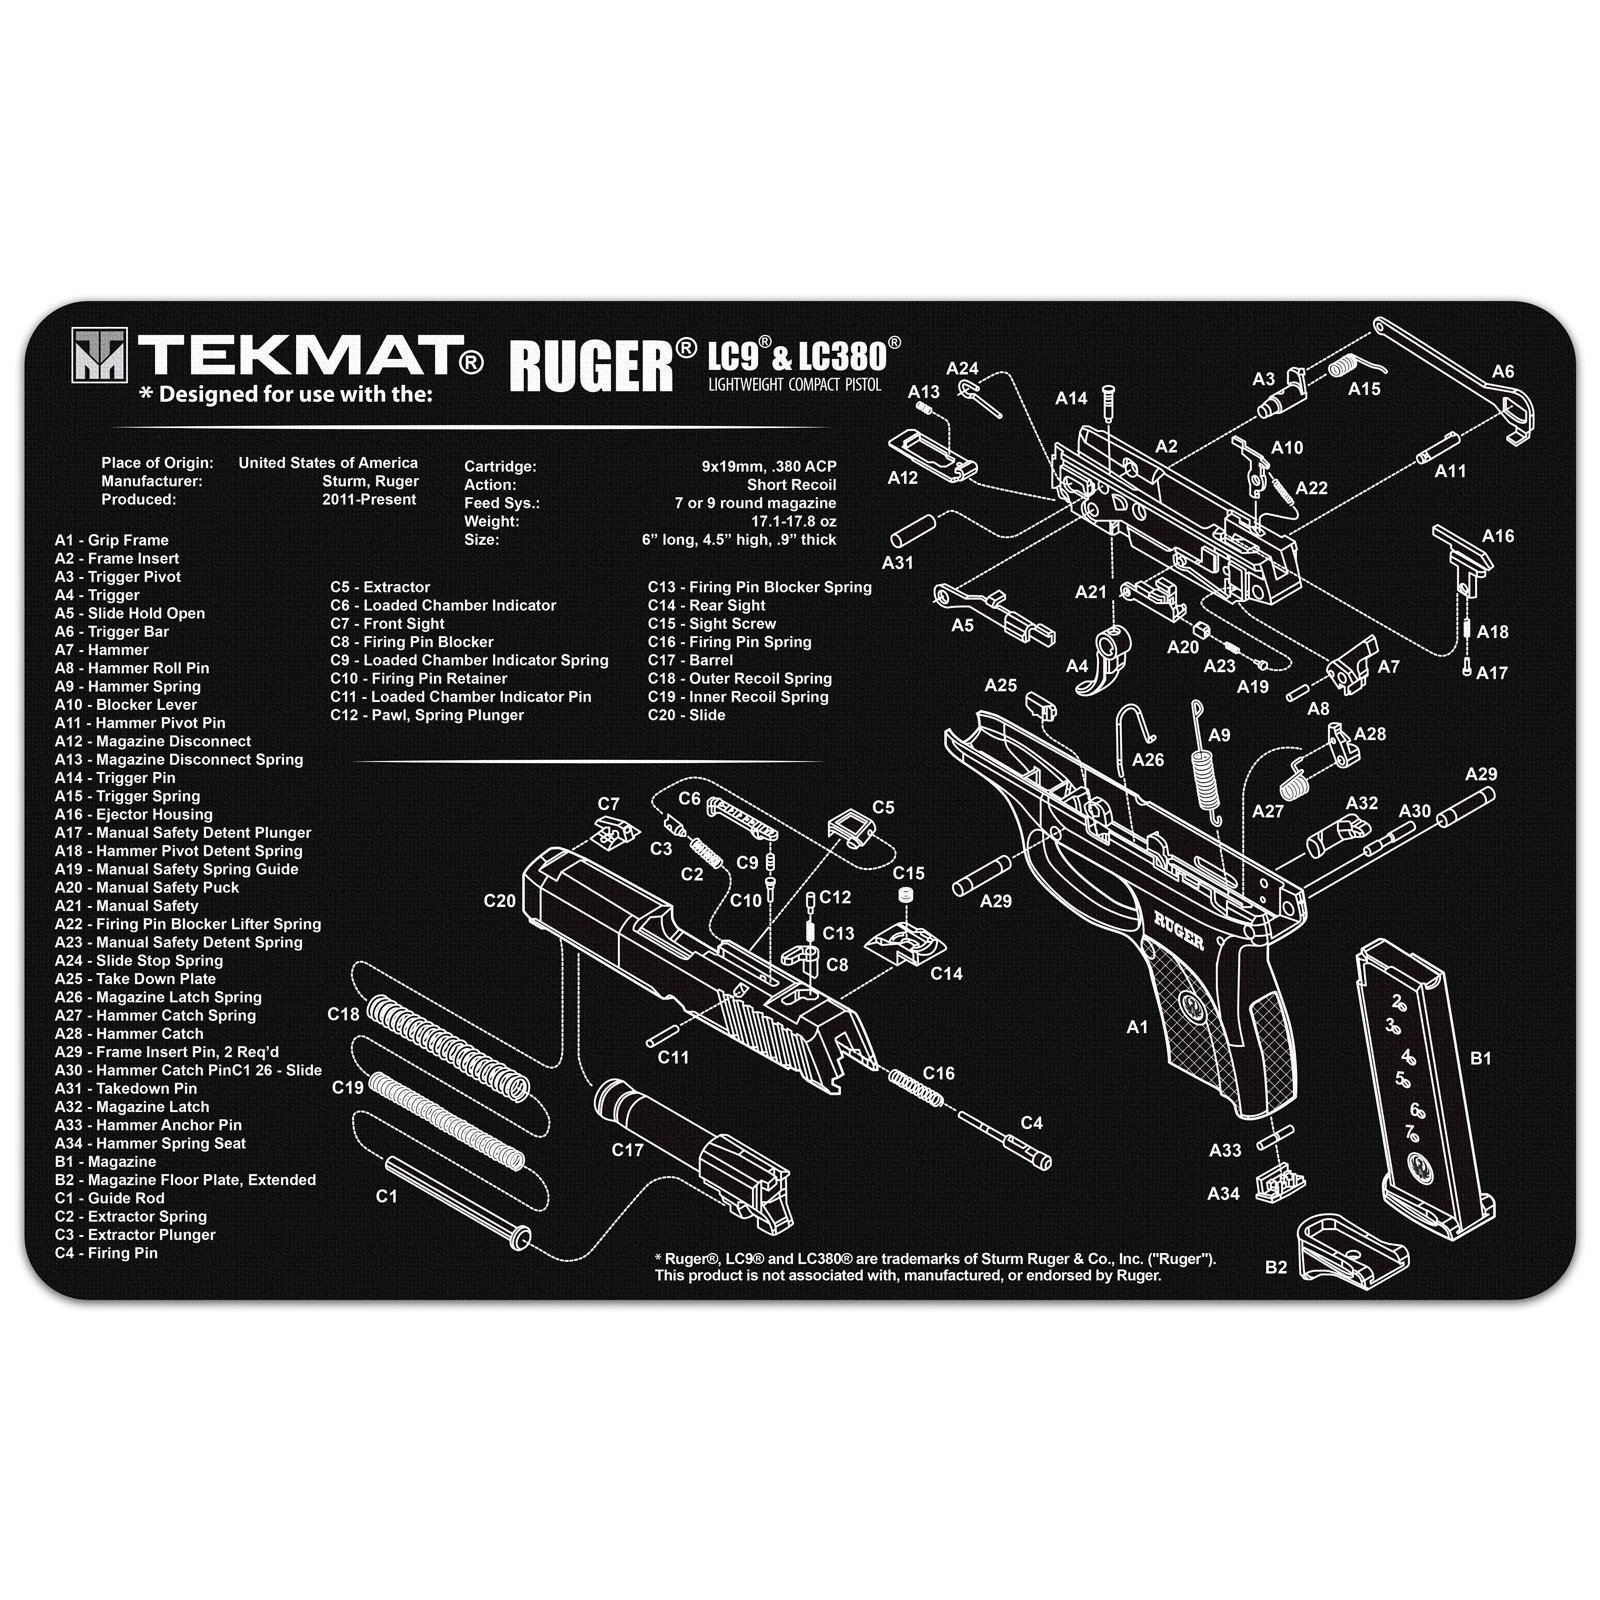 TekMat 11-Inch X 17-Inch Handgun Cleaning Mat with Ruger LC9 Imprint Bonus 5 oc Gun Cleaning Brush & Pick Set by EDOG (Image #1)